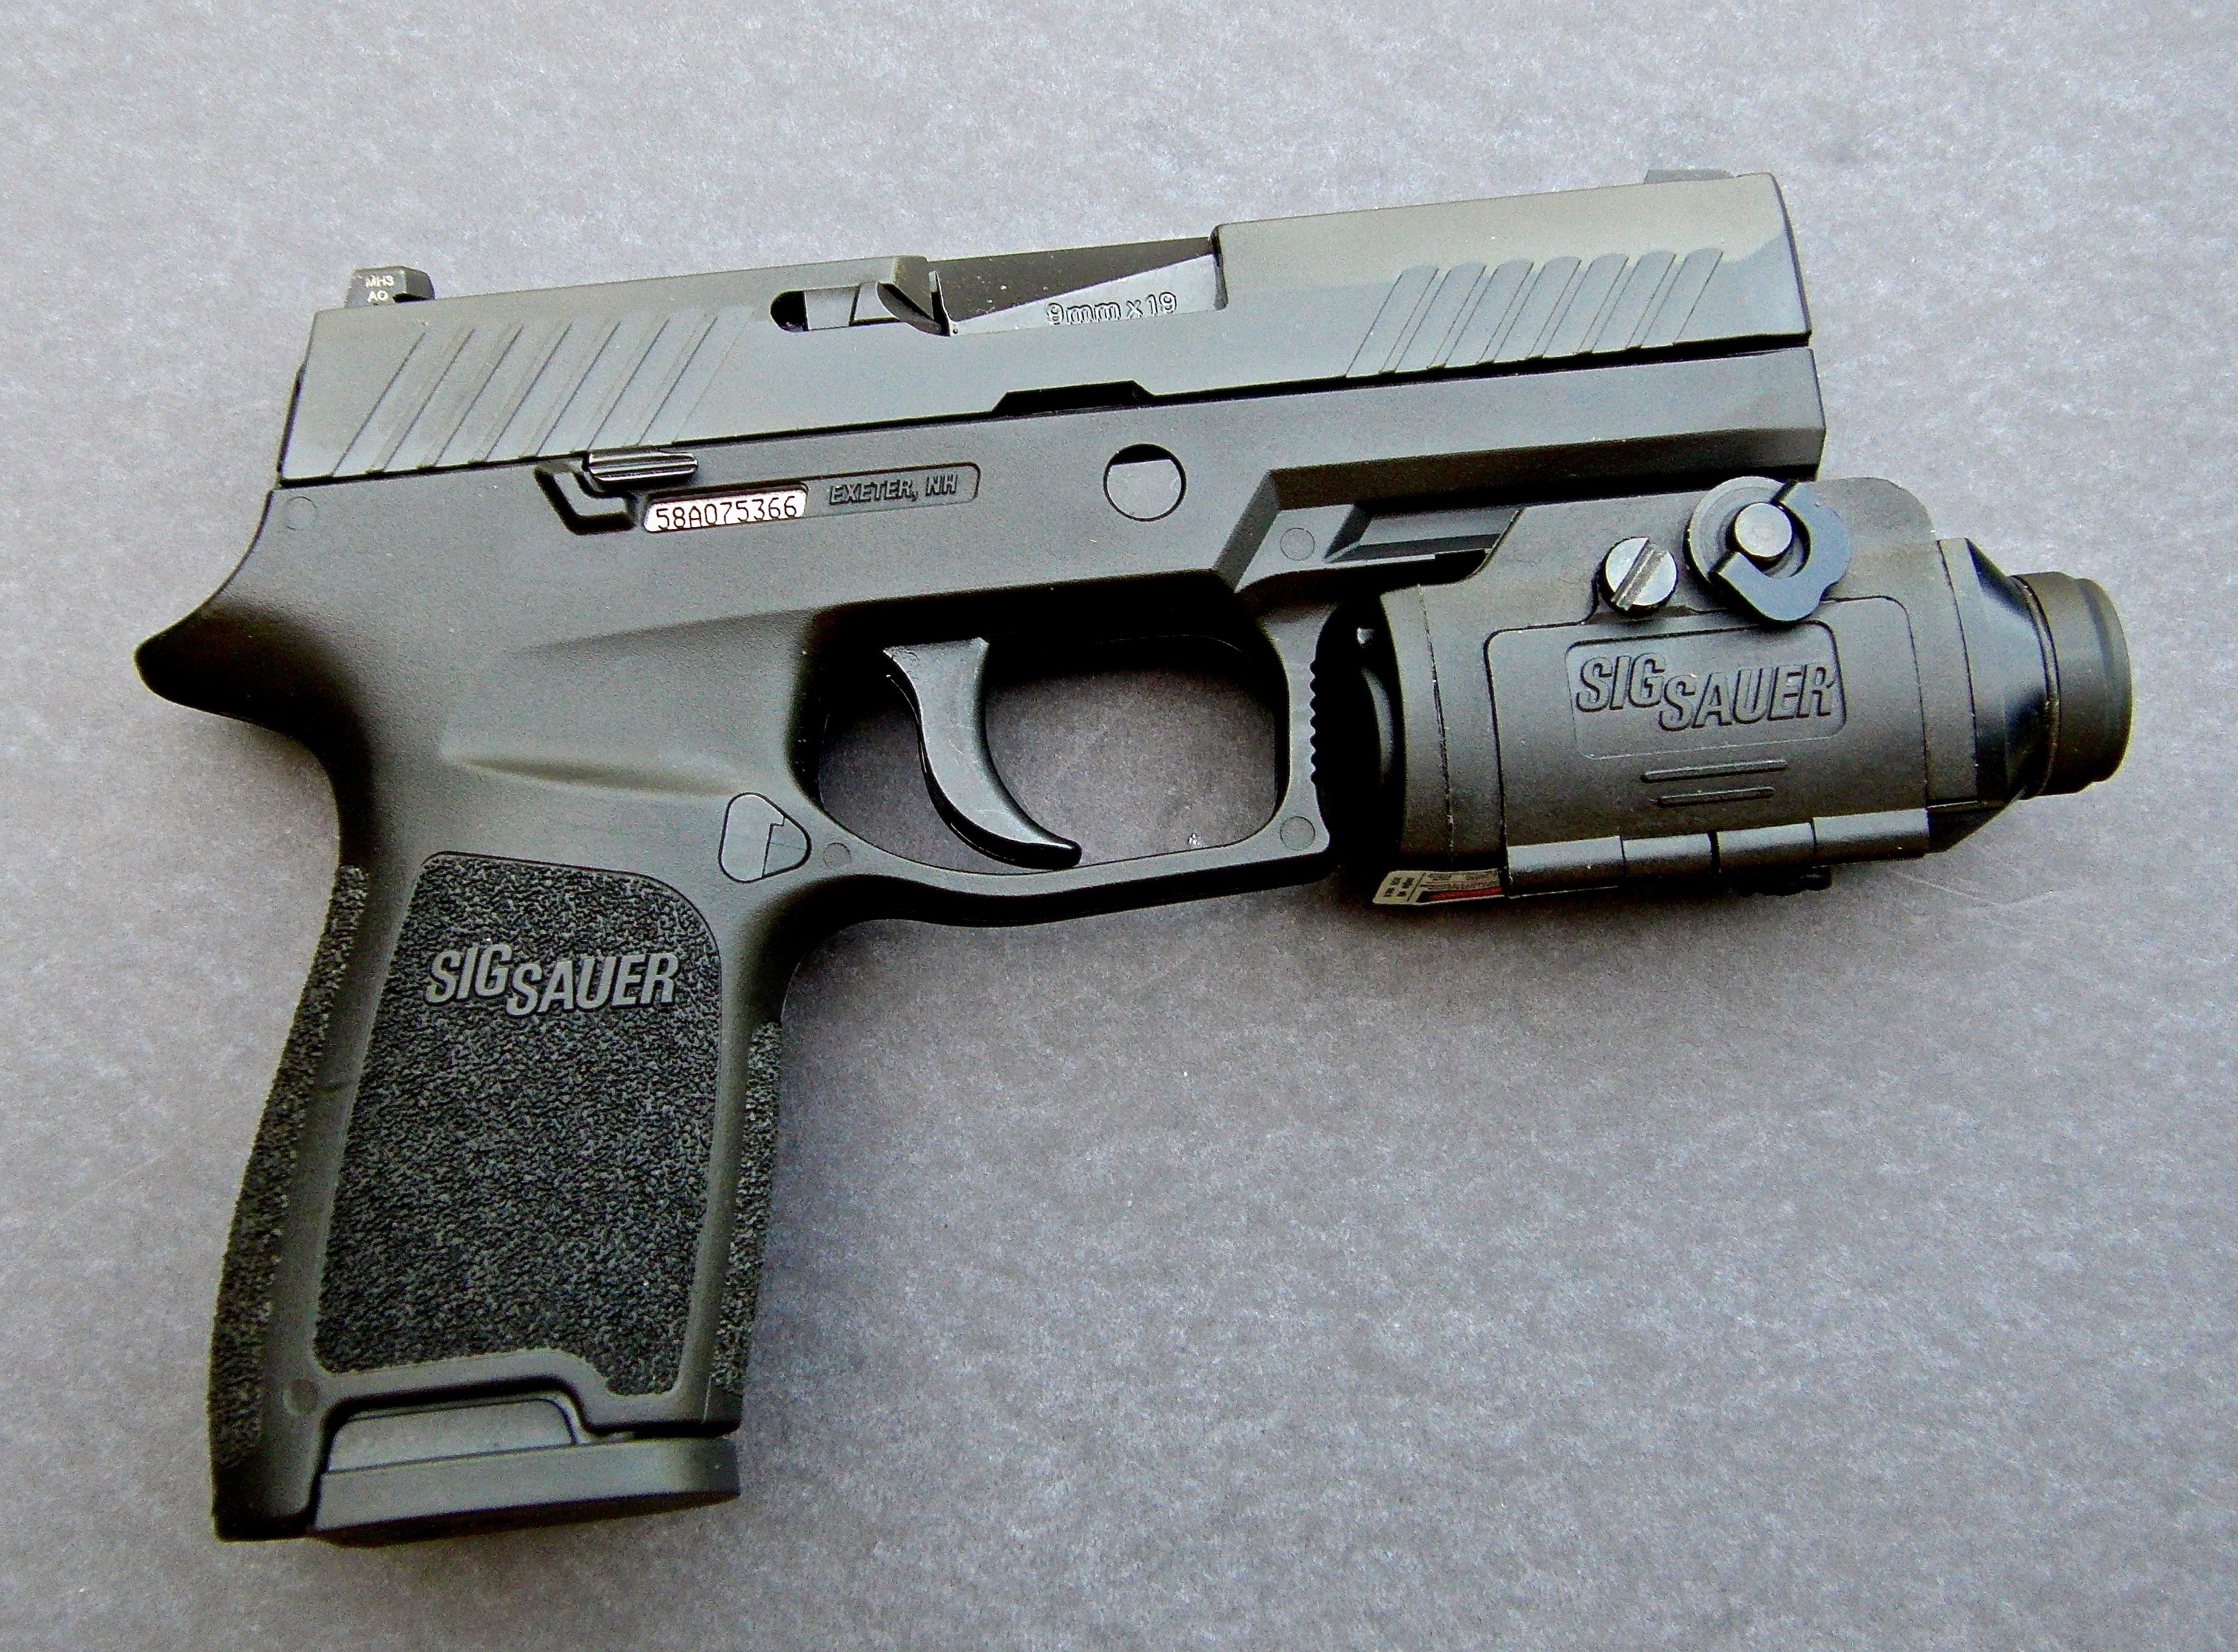 Modular Marvels: SIG Sauer P320 and P320 Compact Pistols | S W A T